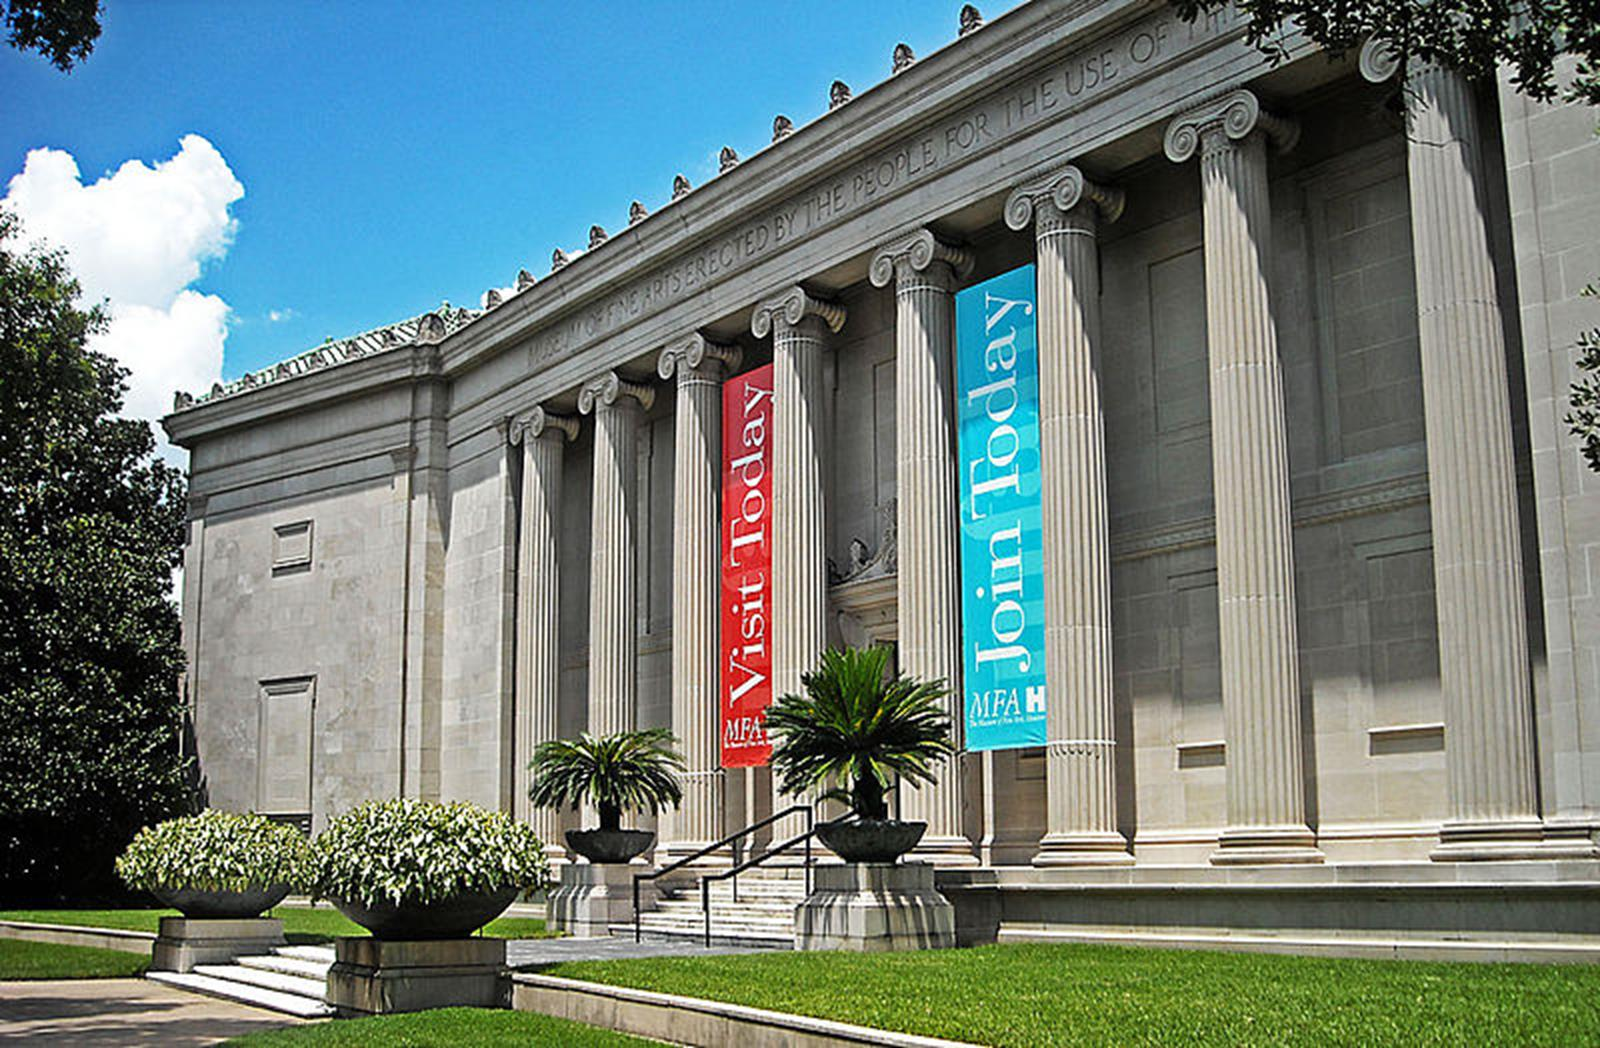 Houston's Museum of Fine Arts